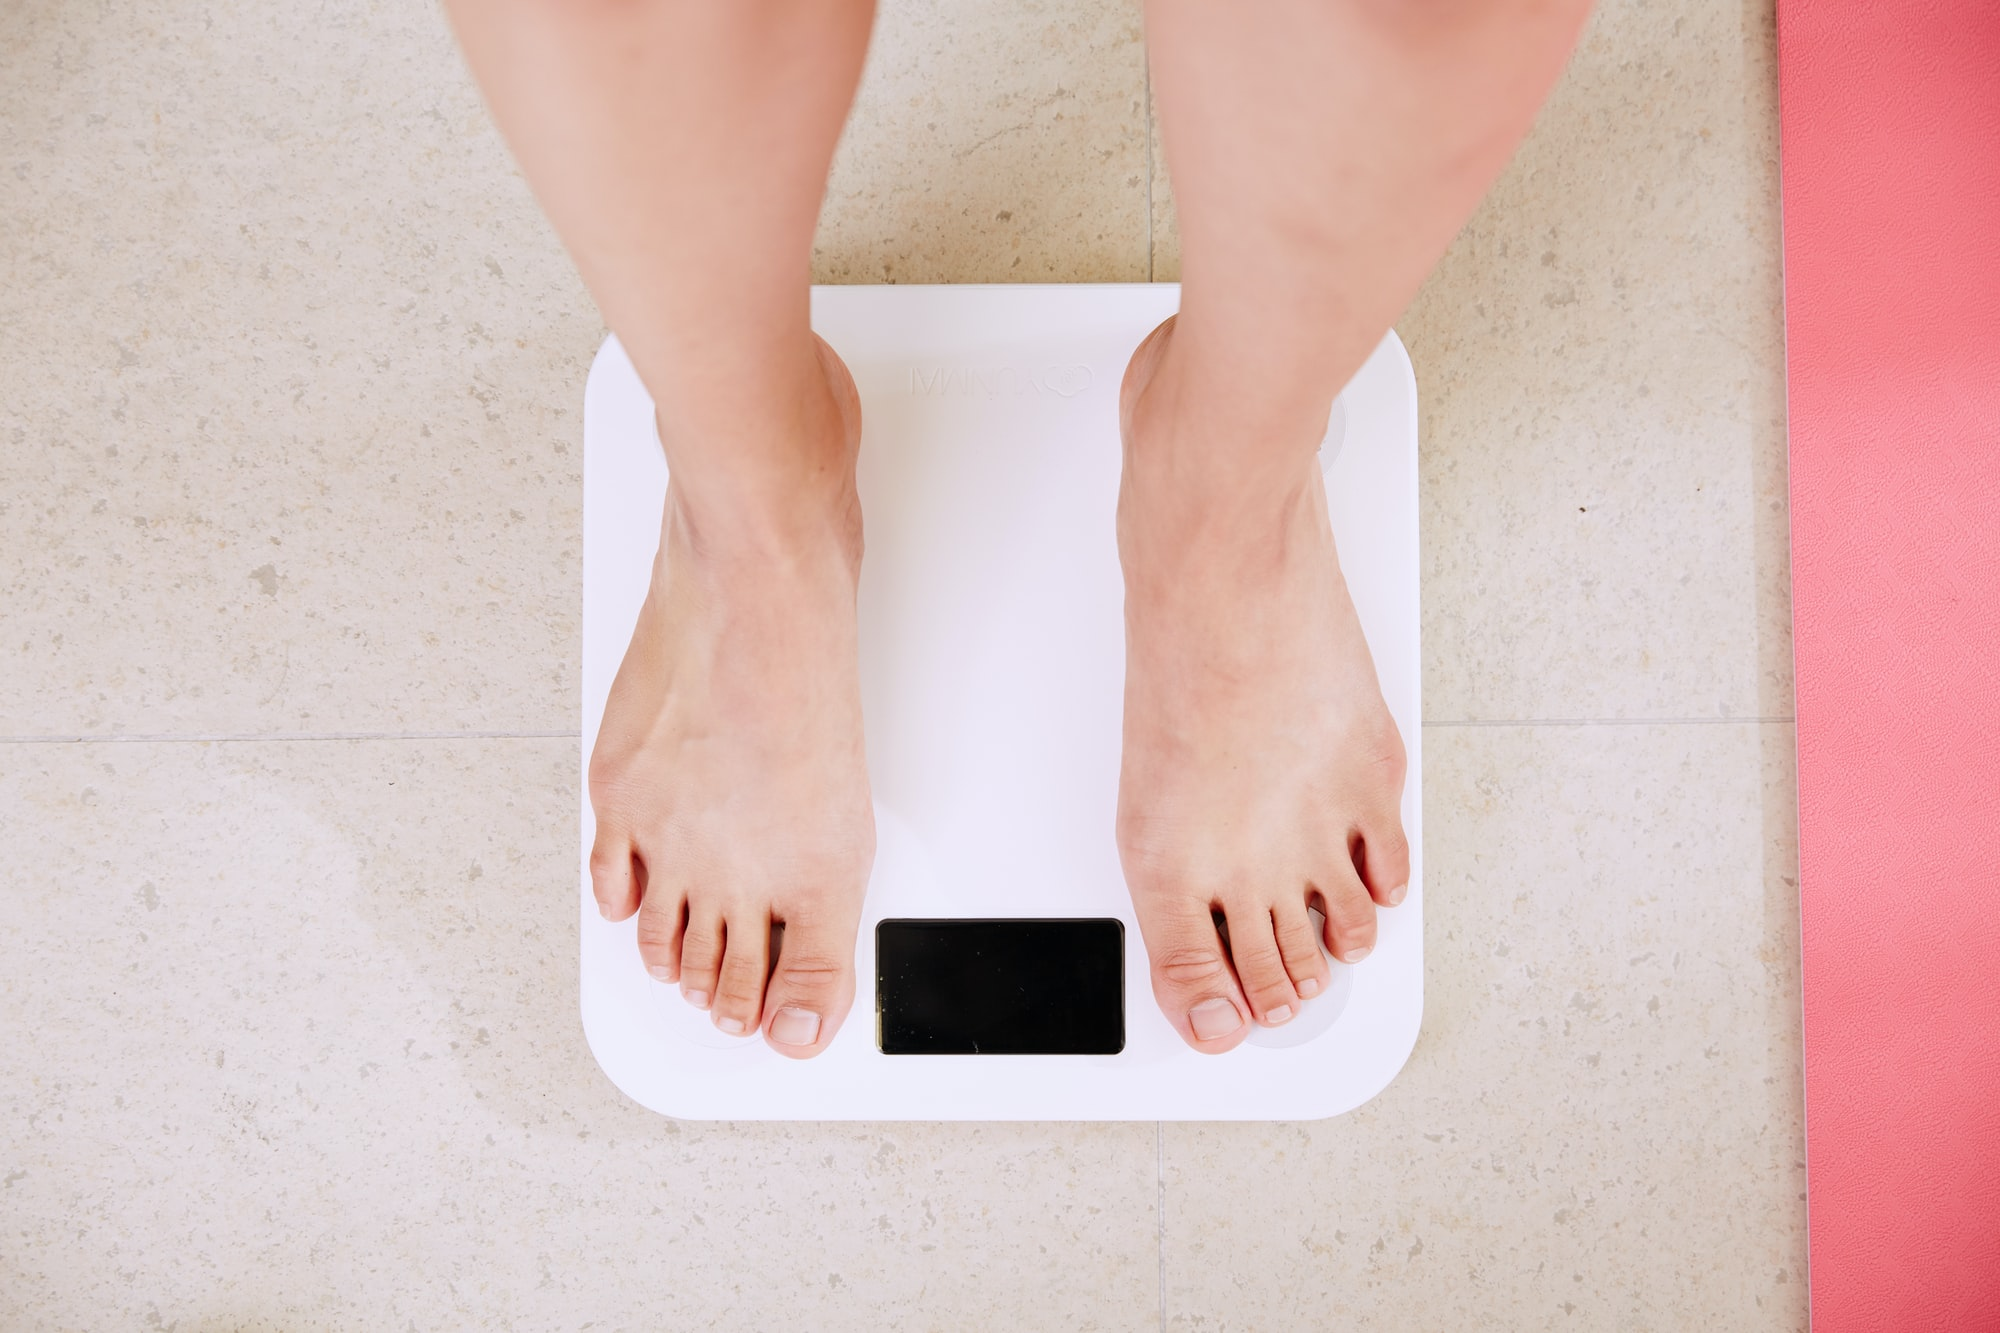 Israeli Biomed Epitomee partners with Nestle to market globally coveted weight loss solution